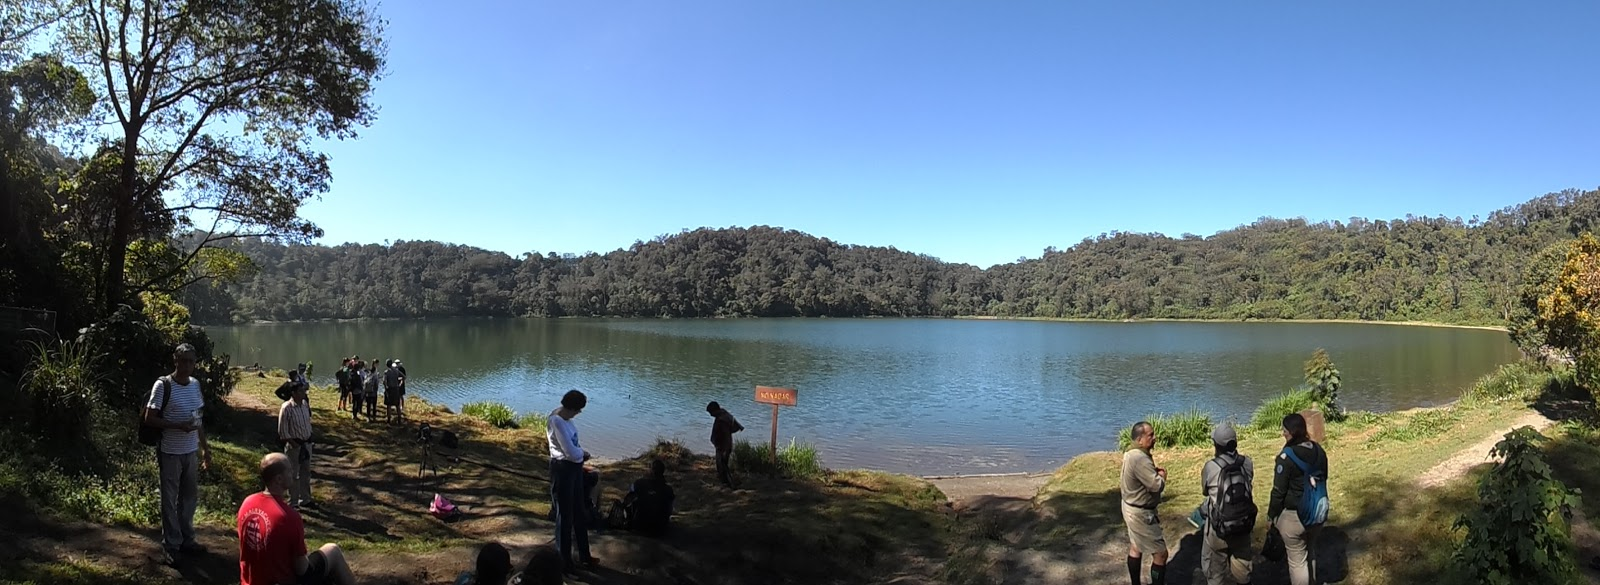 panoramic-view-laguna-chicabal-quetzaltenango